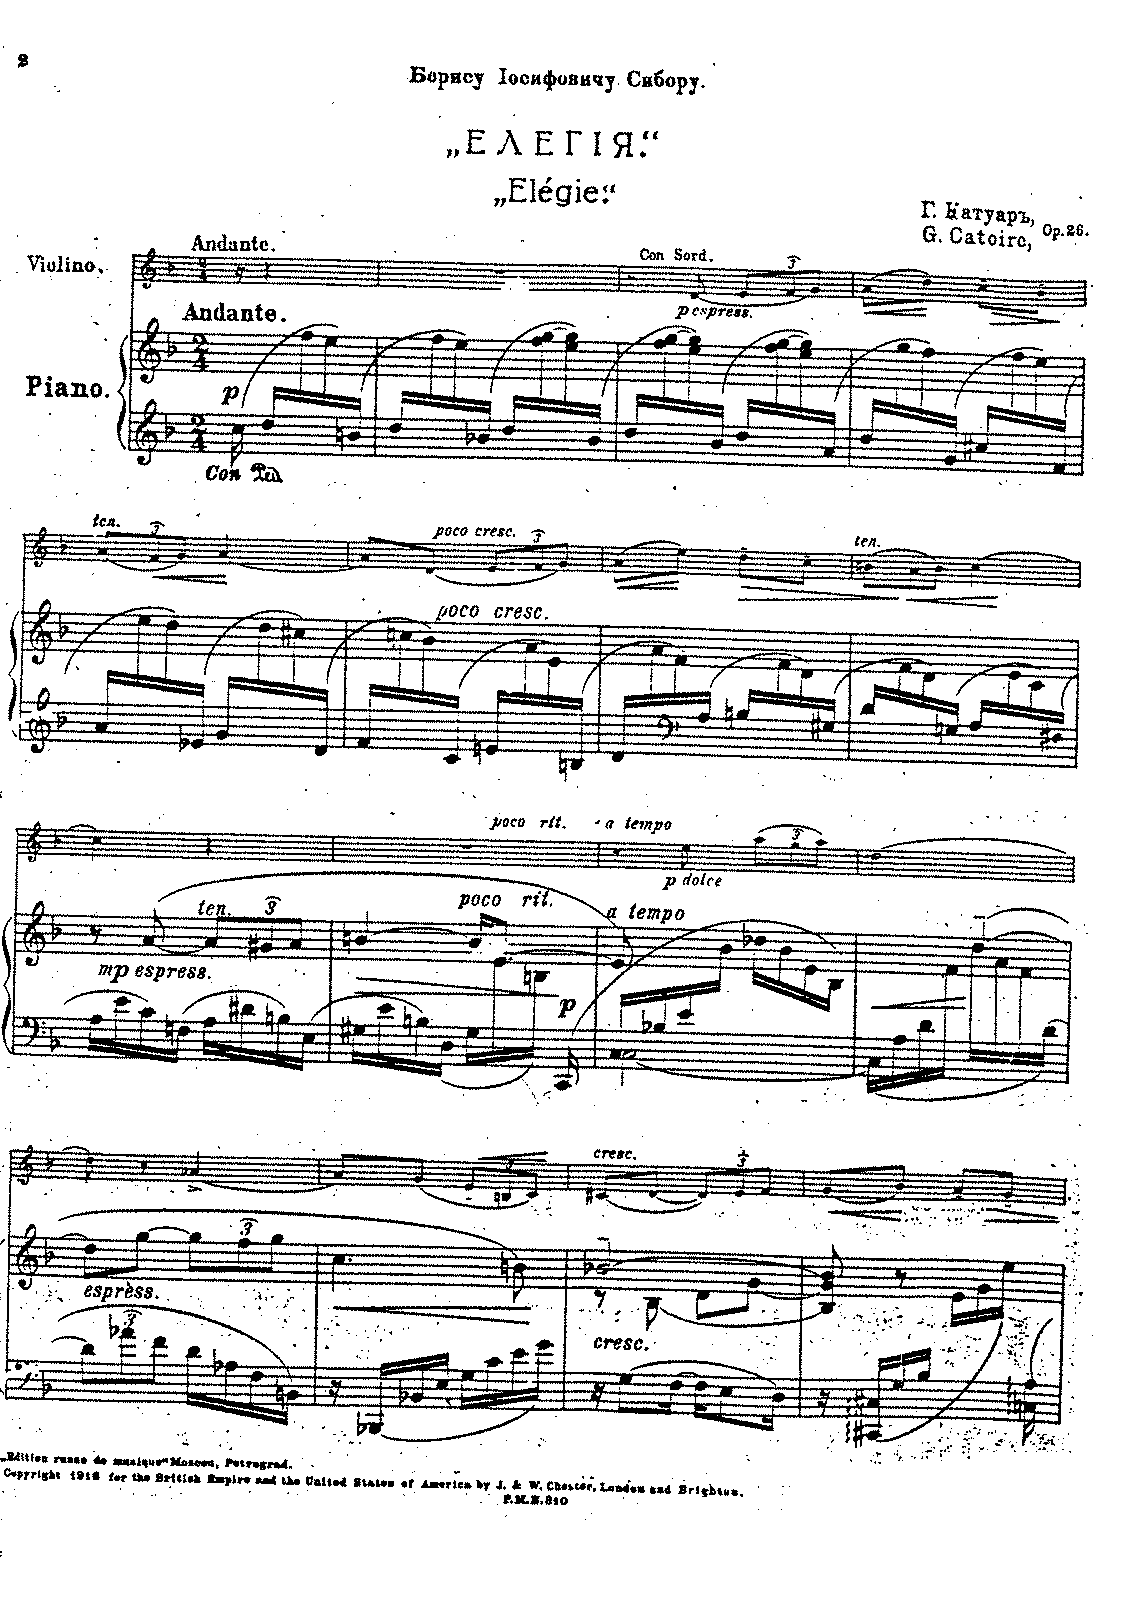 Catoire - Op.26 - Elegie for Piano & Violin.pdf